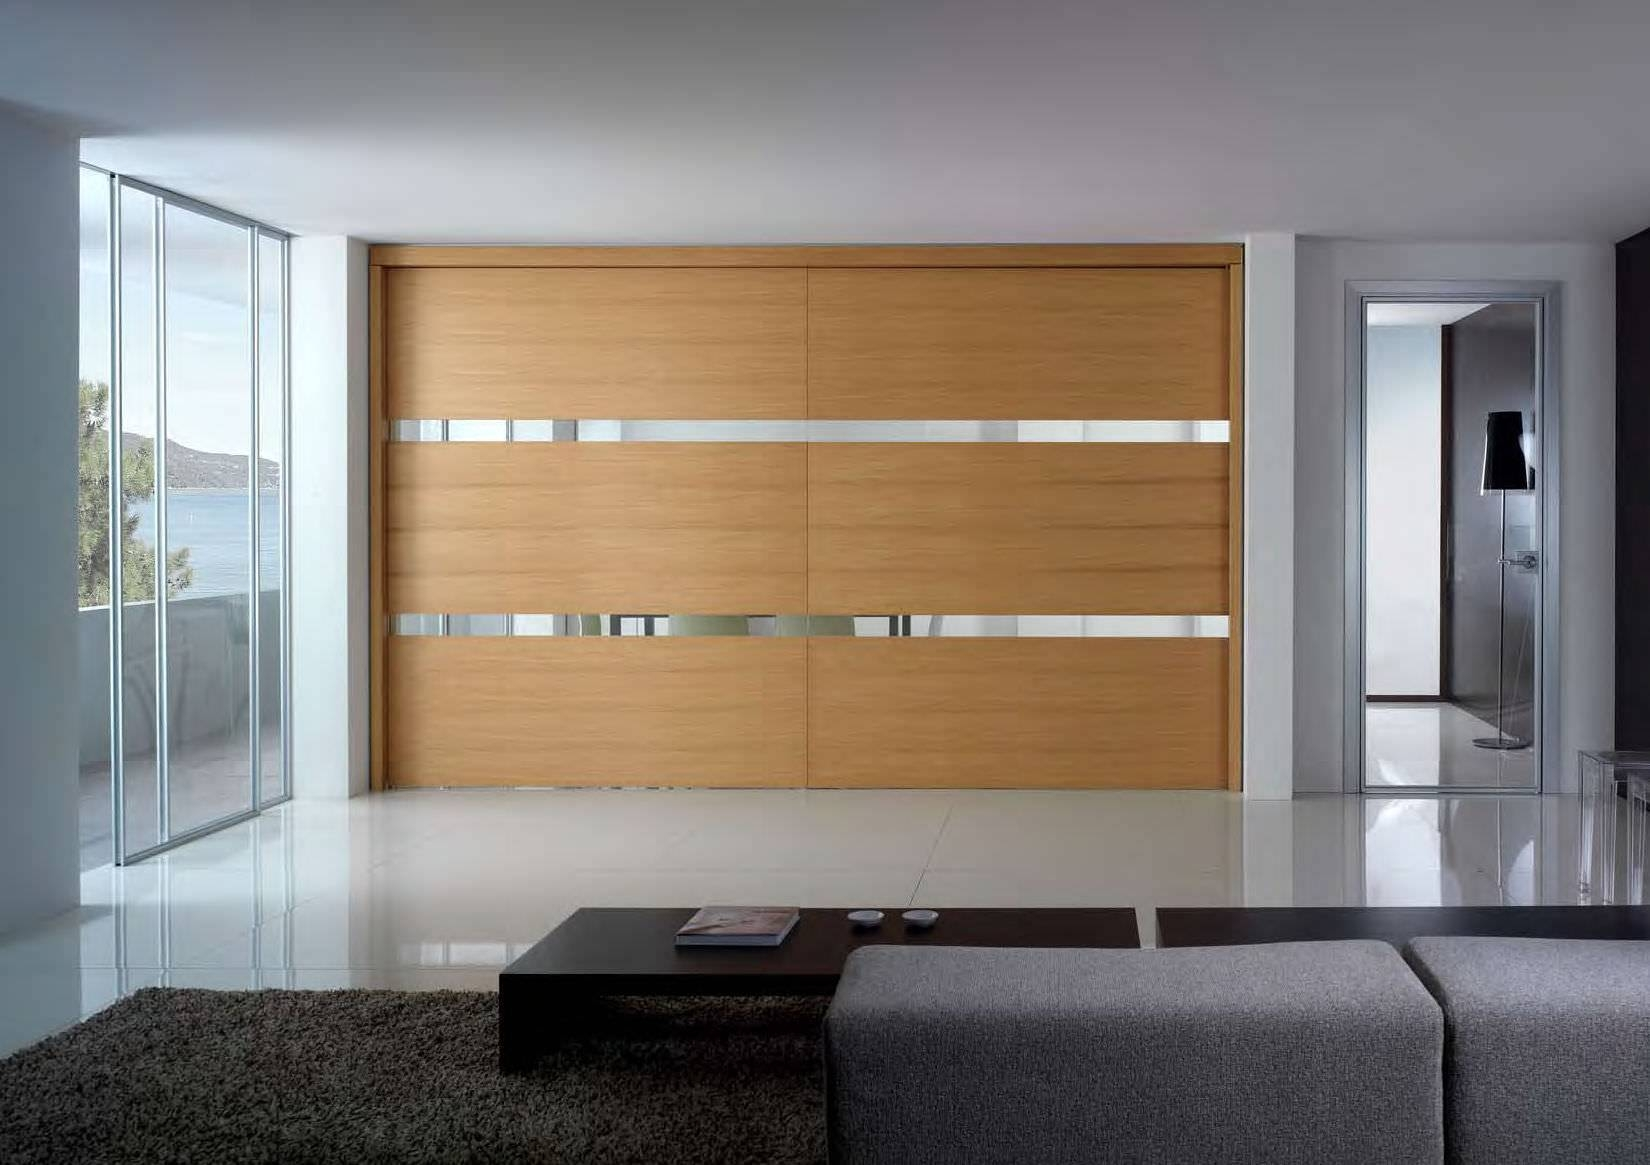 Bedroom : Bedroom Ideas With Fitted Wardrobes Bedroom Fitted throughout Fitted Wooden Wardrobes (Image 5 of 30)